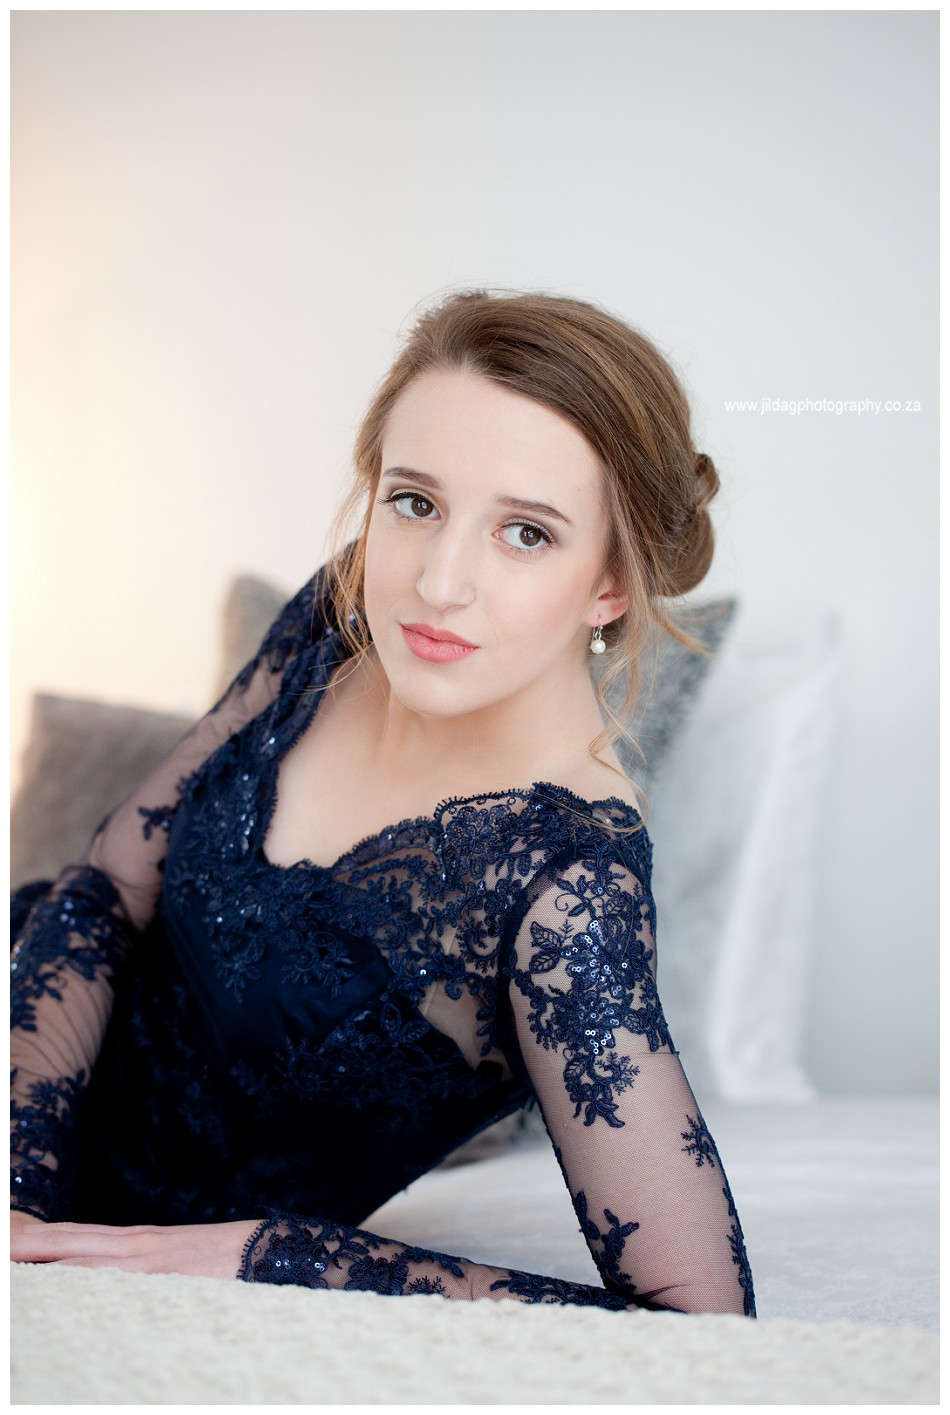 Matric-dance-fairmont-jilda-G-photography (11)